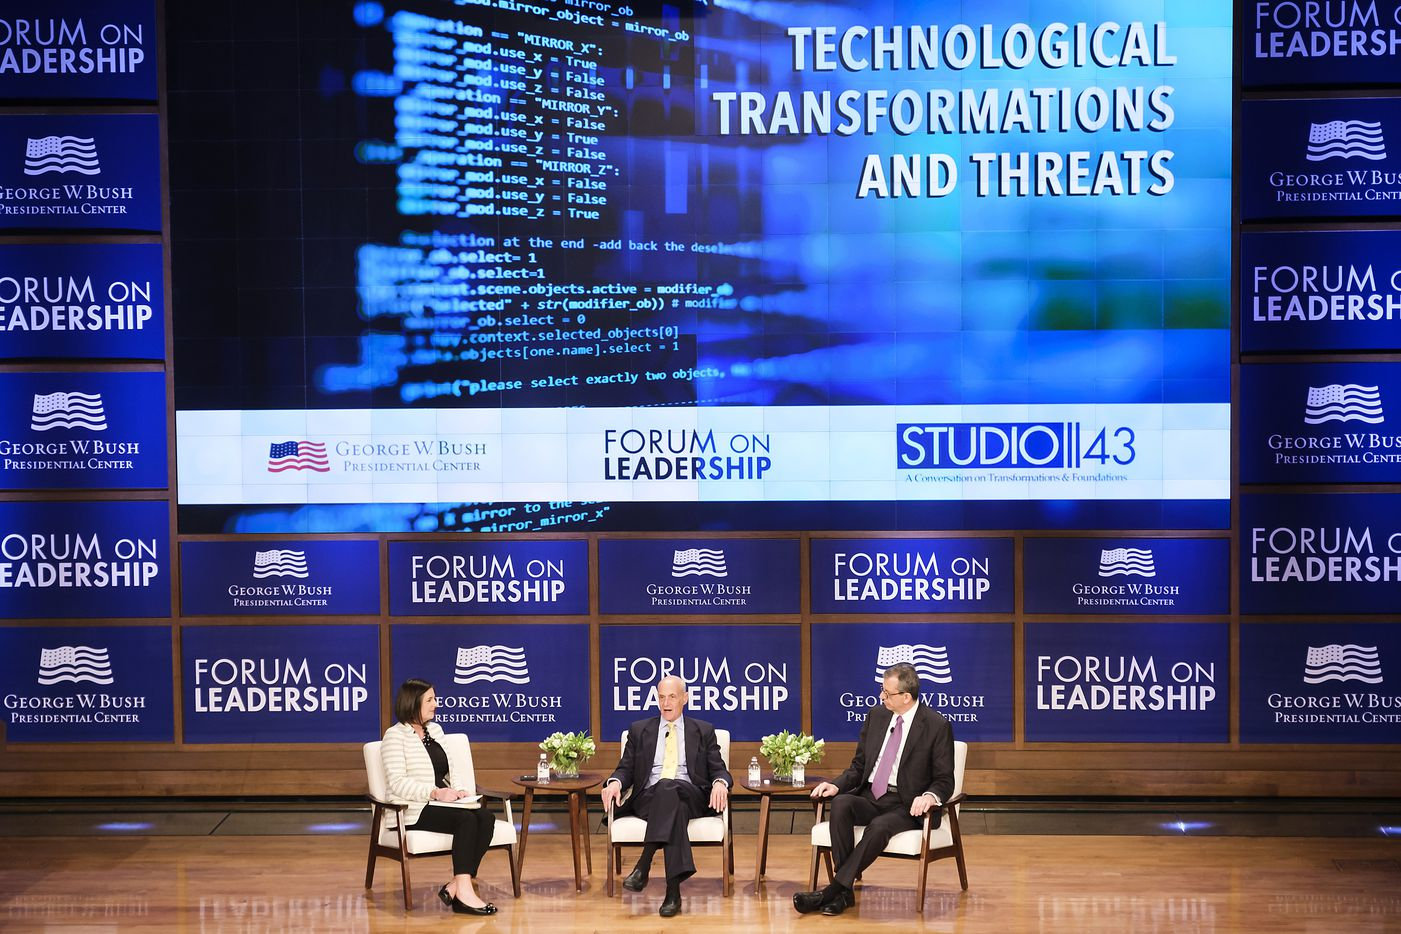 Michael Chertoff, Peter Altabef and moderator Eva Chiang during a discussion titled ÒTechnological Transformations and ThreatsÓ at the Forum on Leadership at the George, W. Bush Presidential Center on Thursday, April 11, 2019, in Dallas. (Smiley N. Pool/The Dallas Morning News)